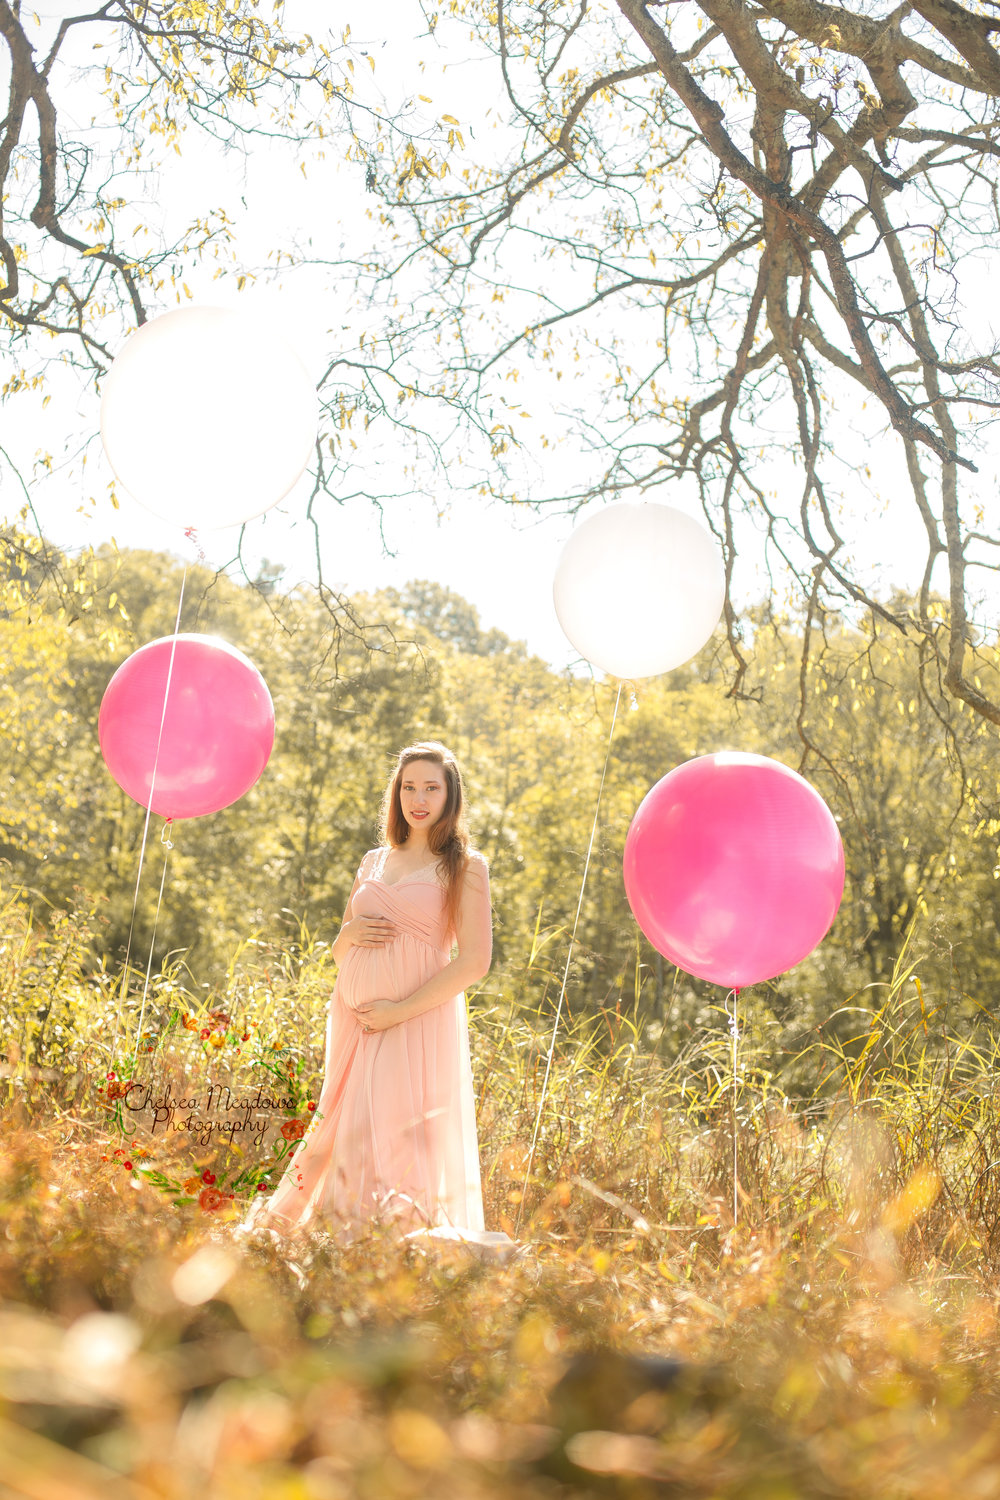 Gusty Gender Reveal - Nashville Newborn Photographer - Chelsea Meadows Photography (37).jpg